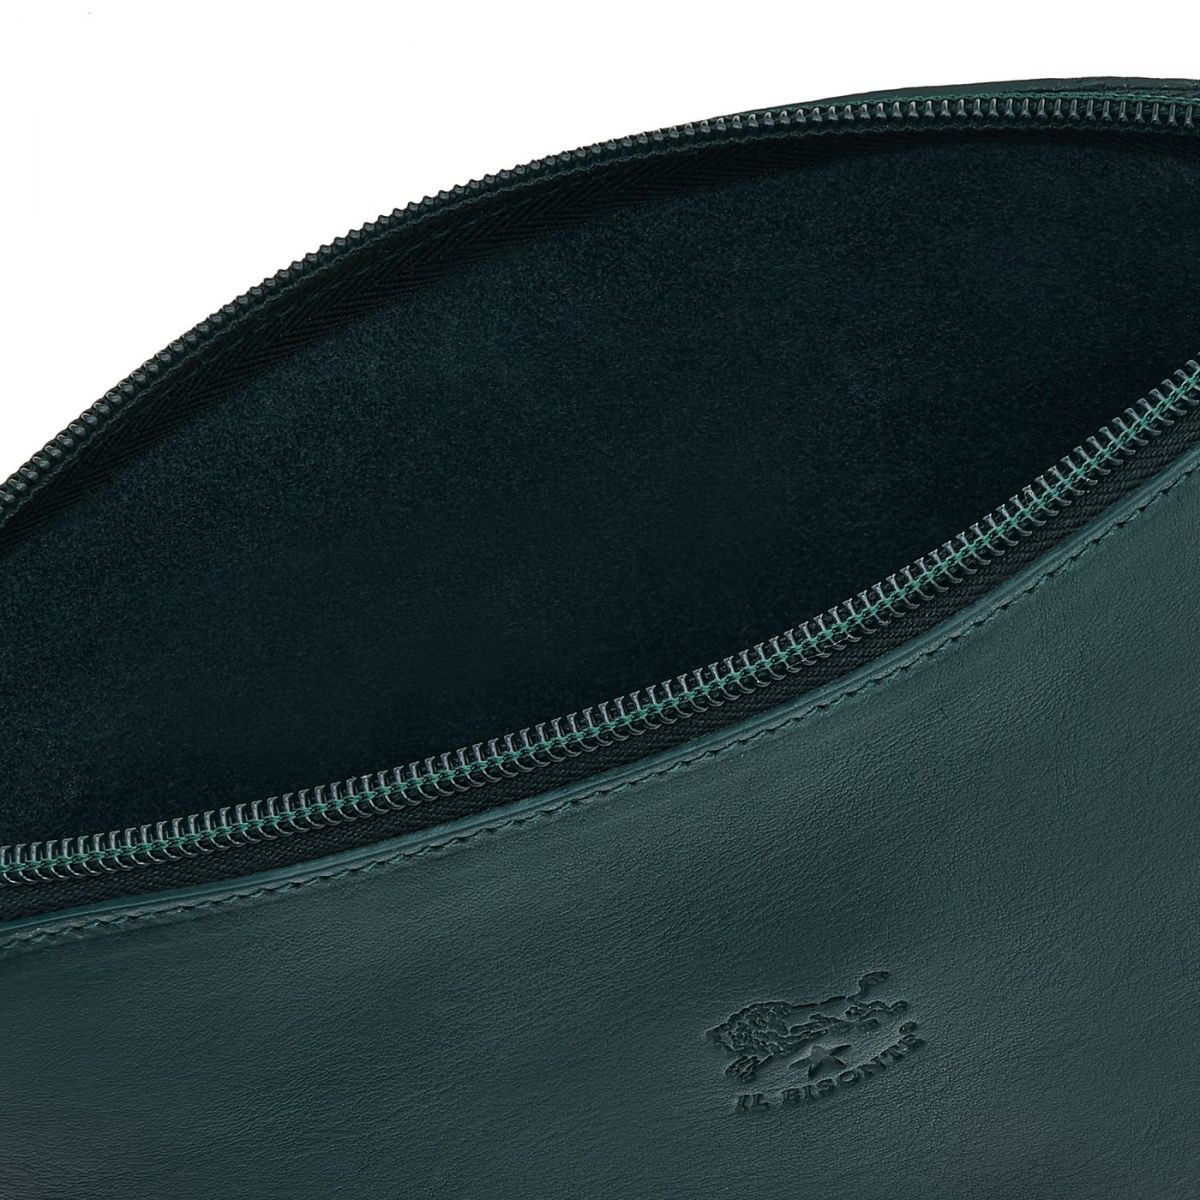 Women's Case in Cowhide Leather SCA033 color Rosemary | Details